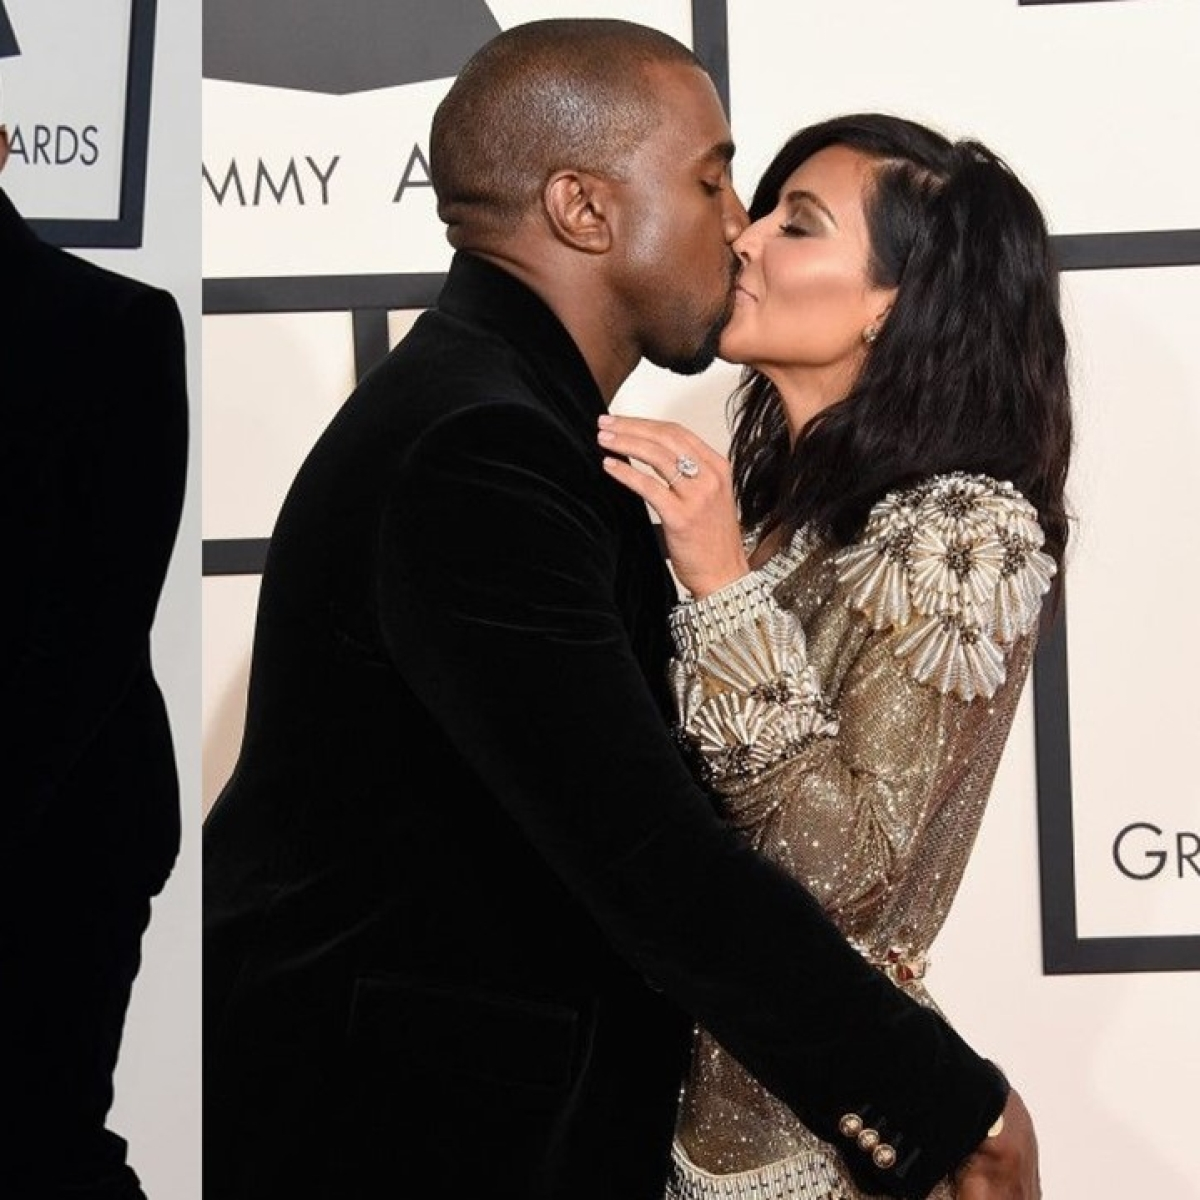 Twitterati roll out hilarious memes, jokes after Kim Kardashian files for divorce from Kanye West